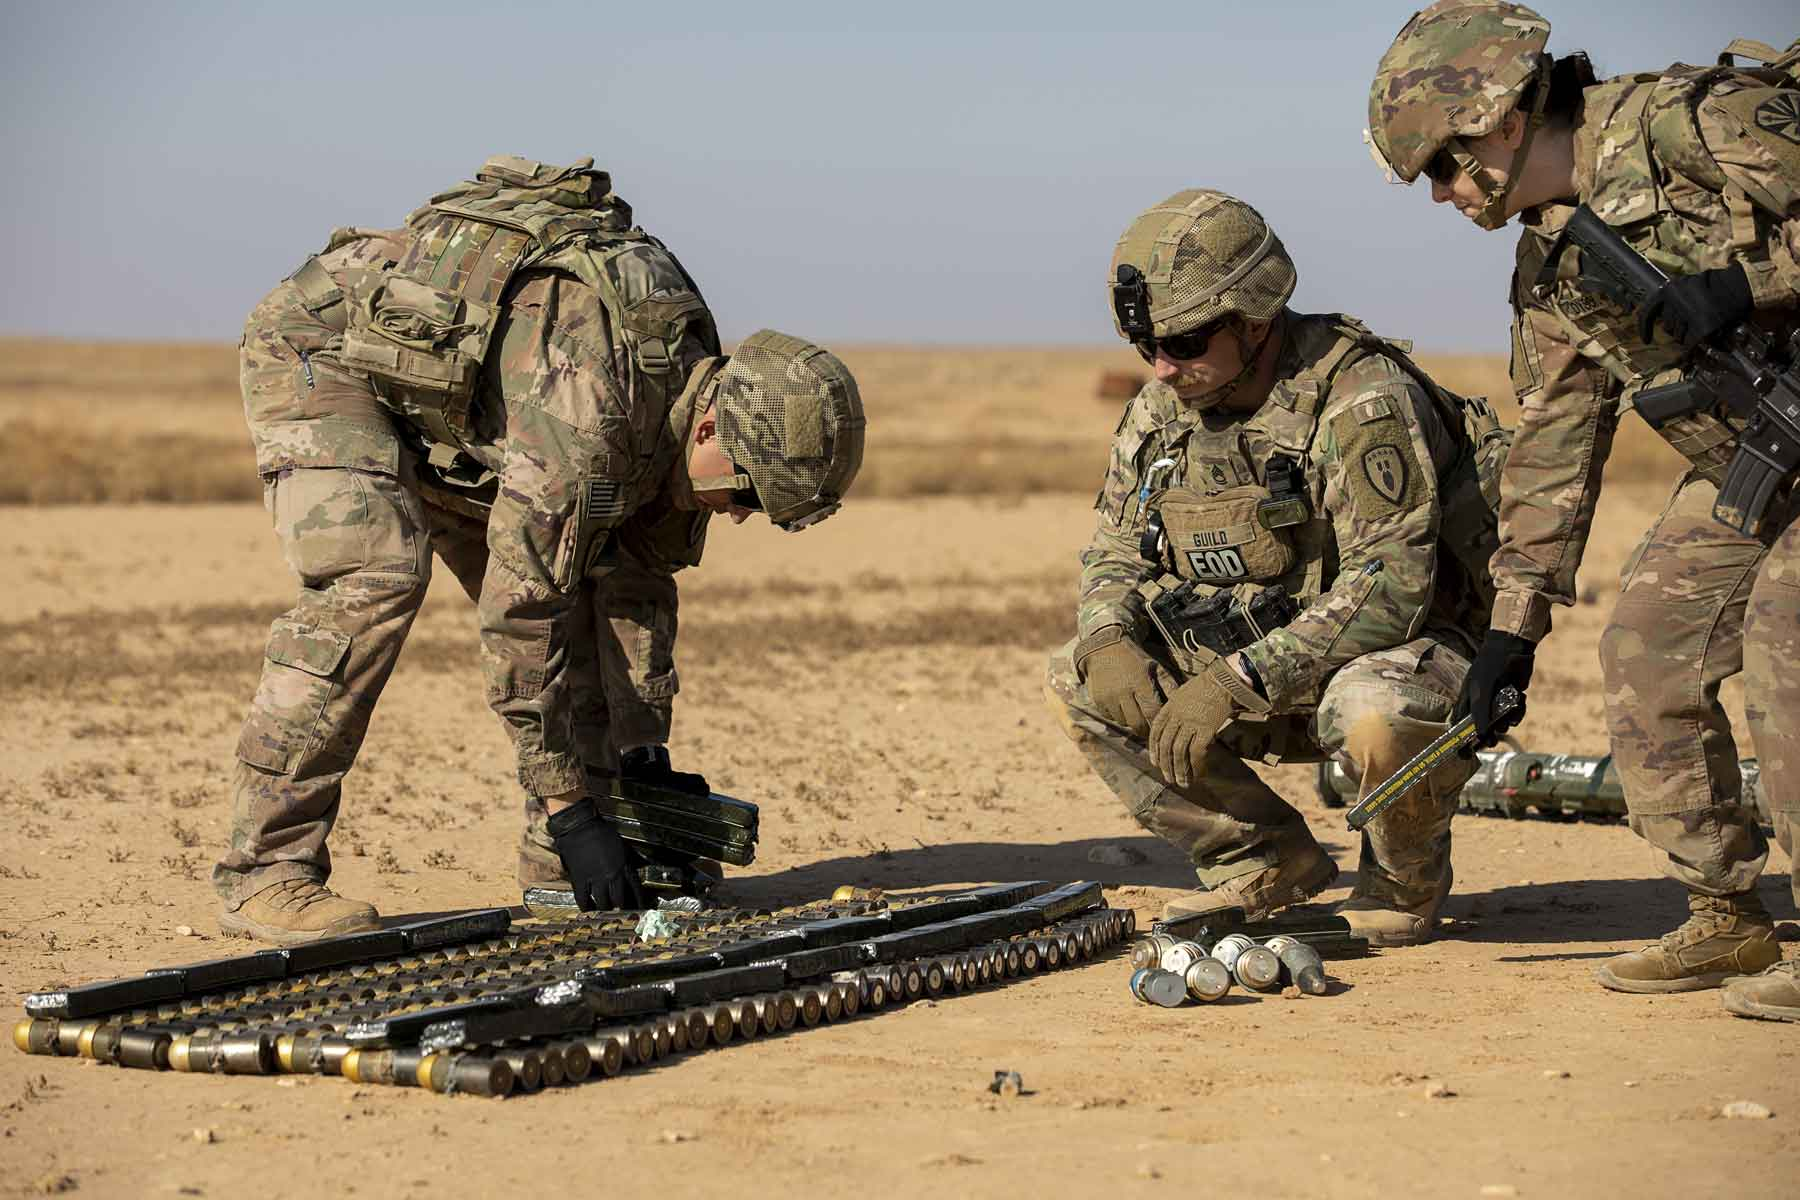 U.S. Soldiers • 745th EOD Disposes of Outdated Ordnance • 22 Sep 2020